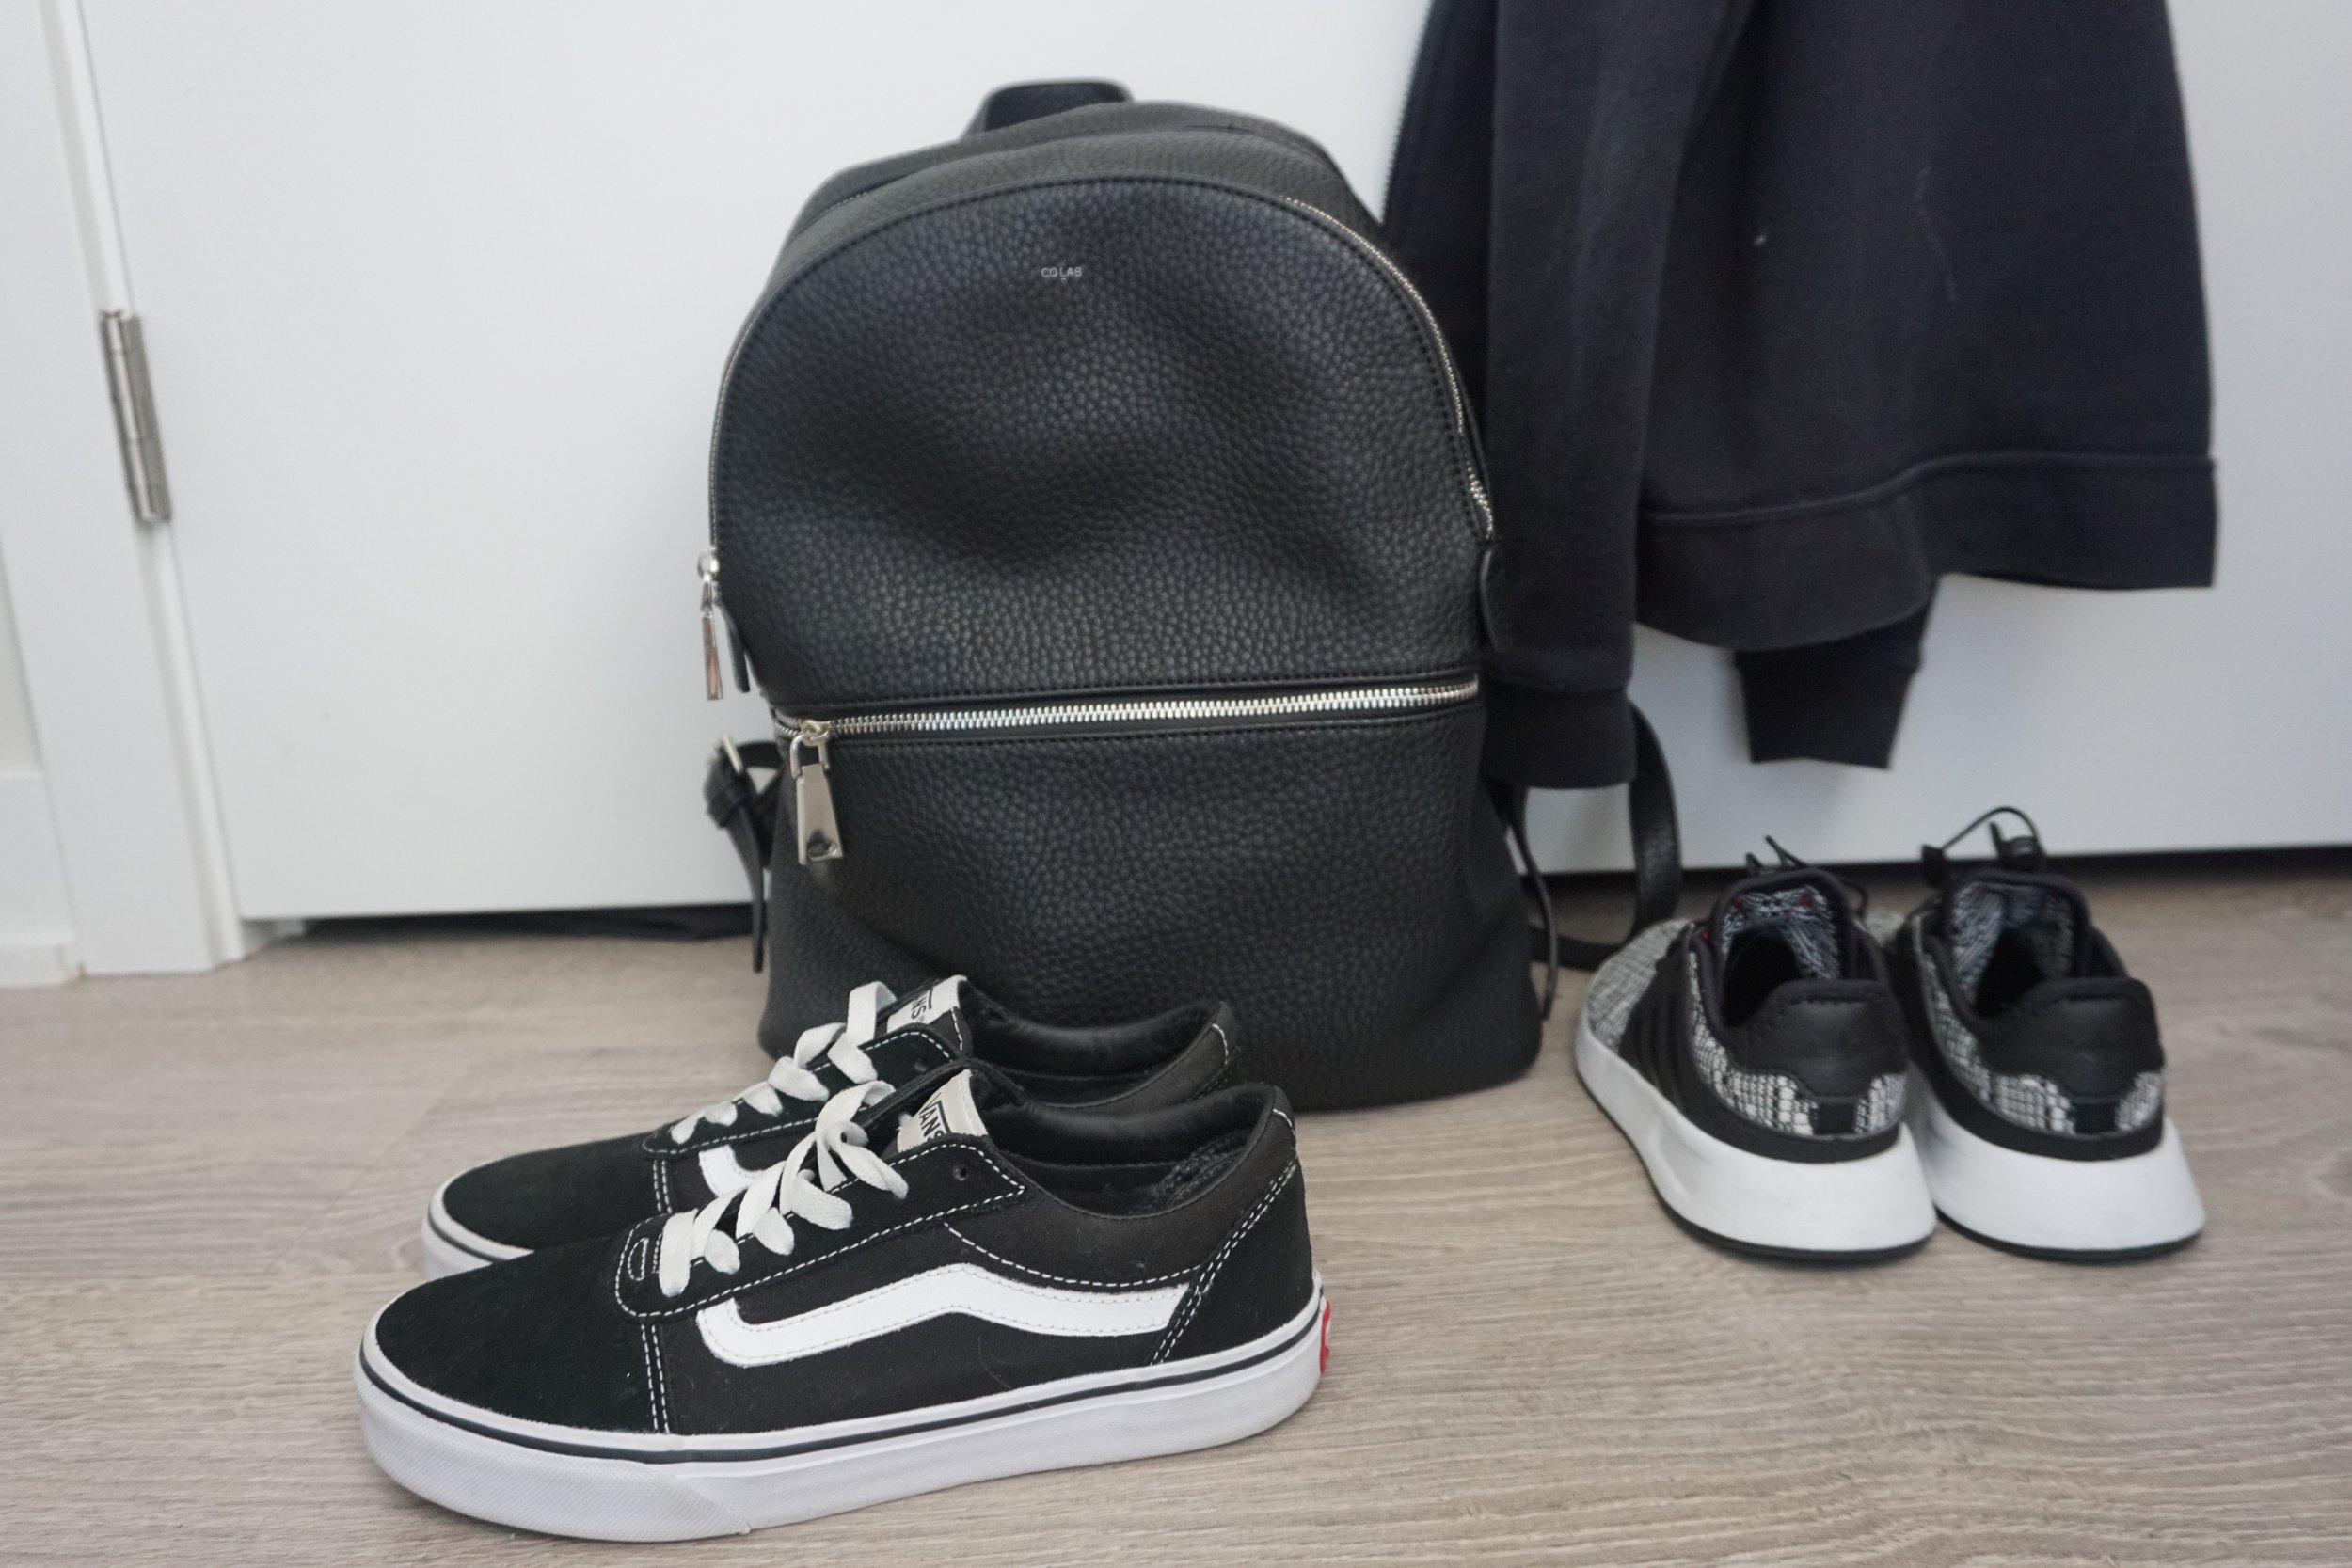 Vegan leather backpack is from  Colab .